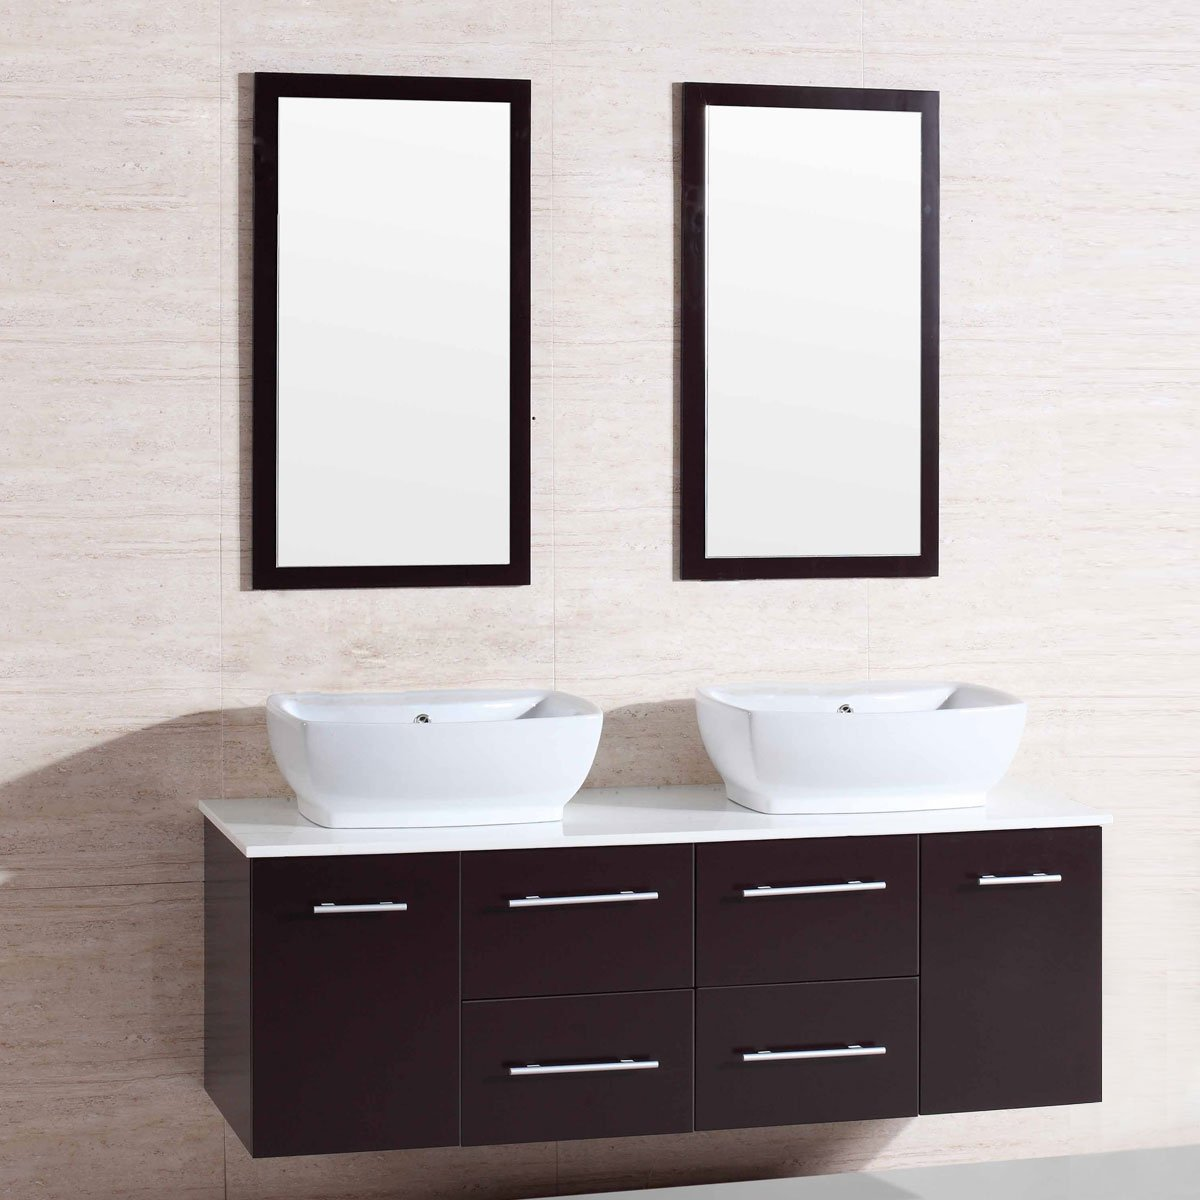 Decoraport 60 In. Wall Mount Bathroom Vanity Set with Double Sinks and Mirrors (A-T9146) by Decoraport